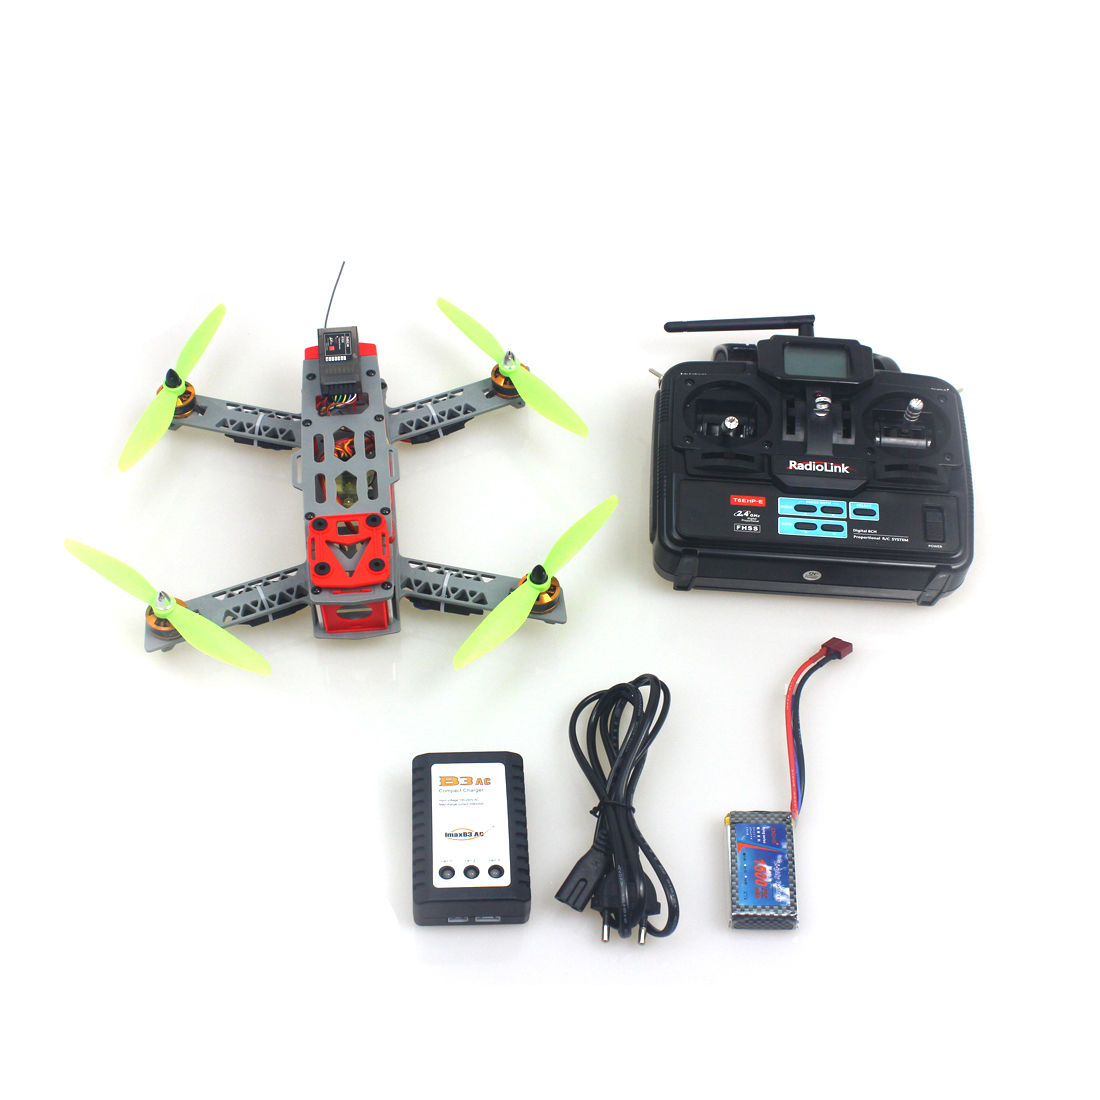 F16051-A JMT FPV 260 Frame Small Quadcopter with Motor ESC Flight Control Opensource 6Ch TX & RX Battery RTF Drone FS rc quadcopter ufo 4axle kit hobbywing 10a esc 2400kv brushless motor straight pin flight control opensource f04024 a